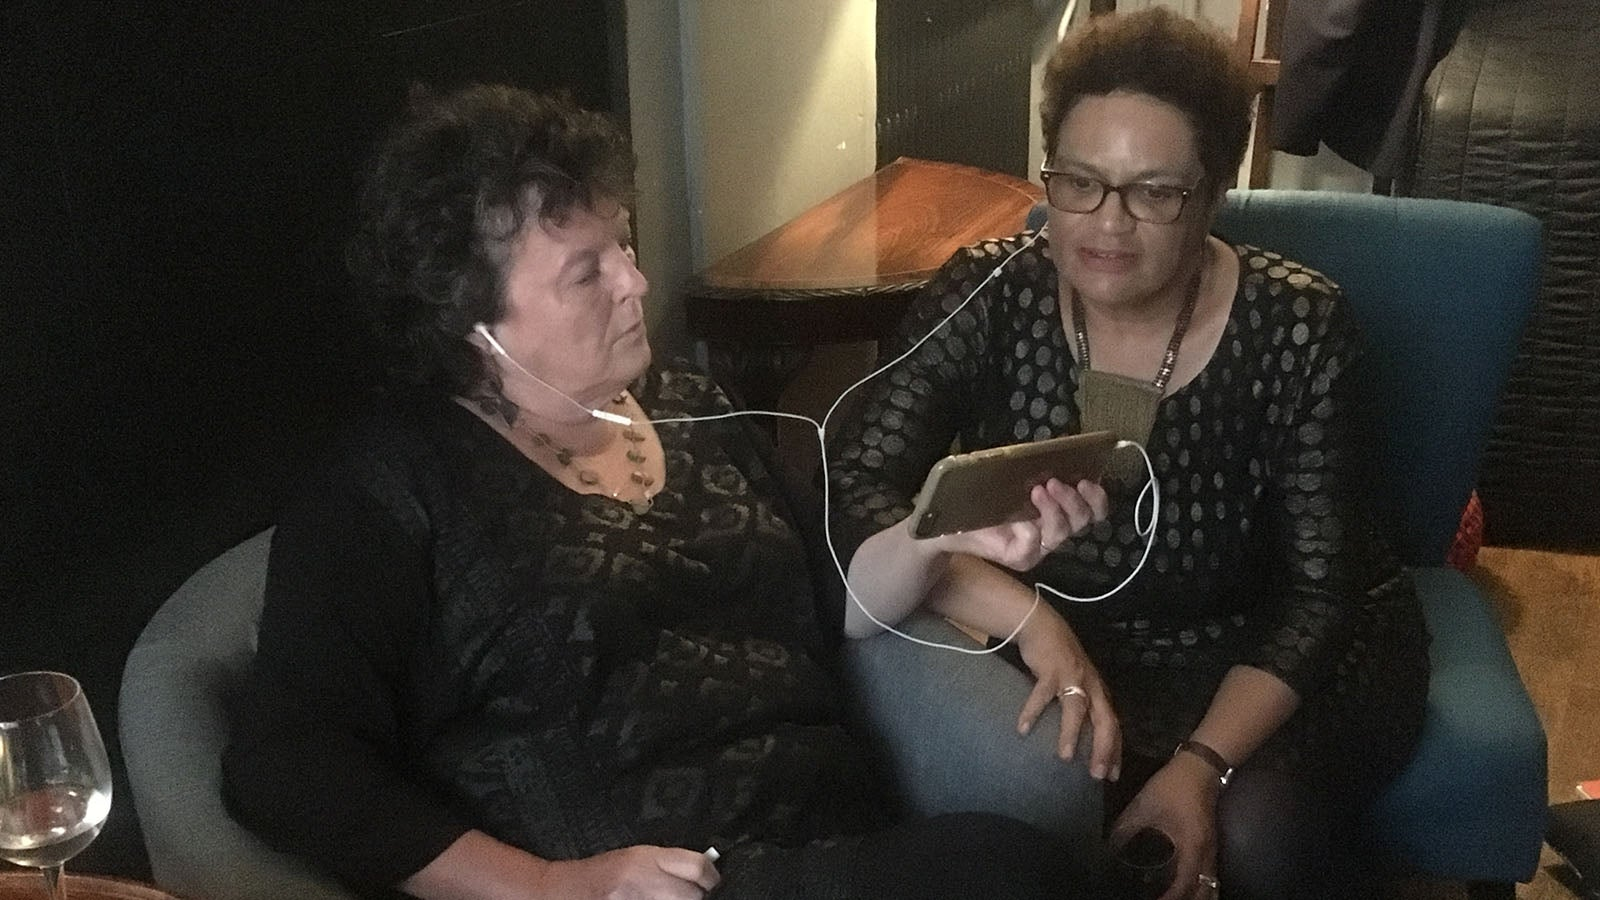 Carol Ann Duffy and Jackie Kay sharing headphones to watch the match backstage